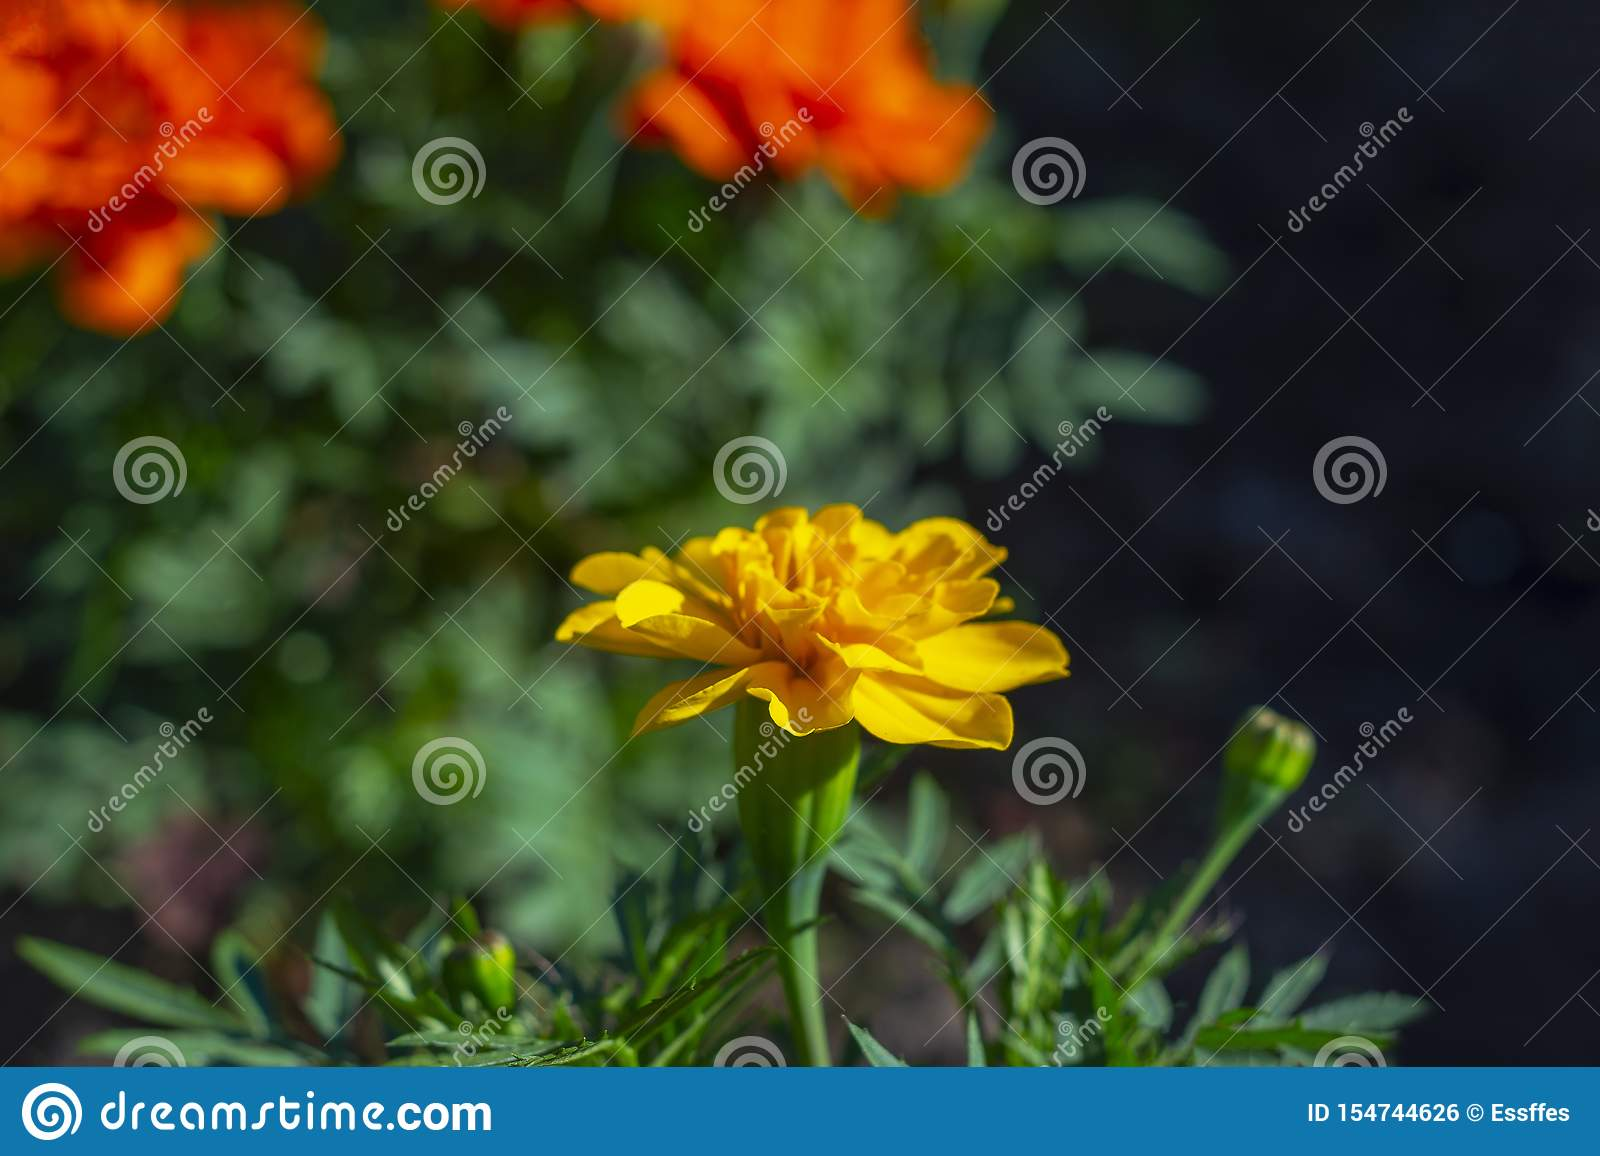 Marigold orange flower on a flowerbed against a background of other red flowers and green vegetation on the street.